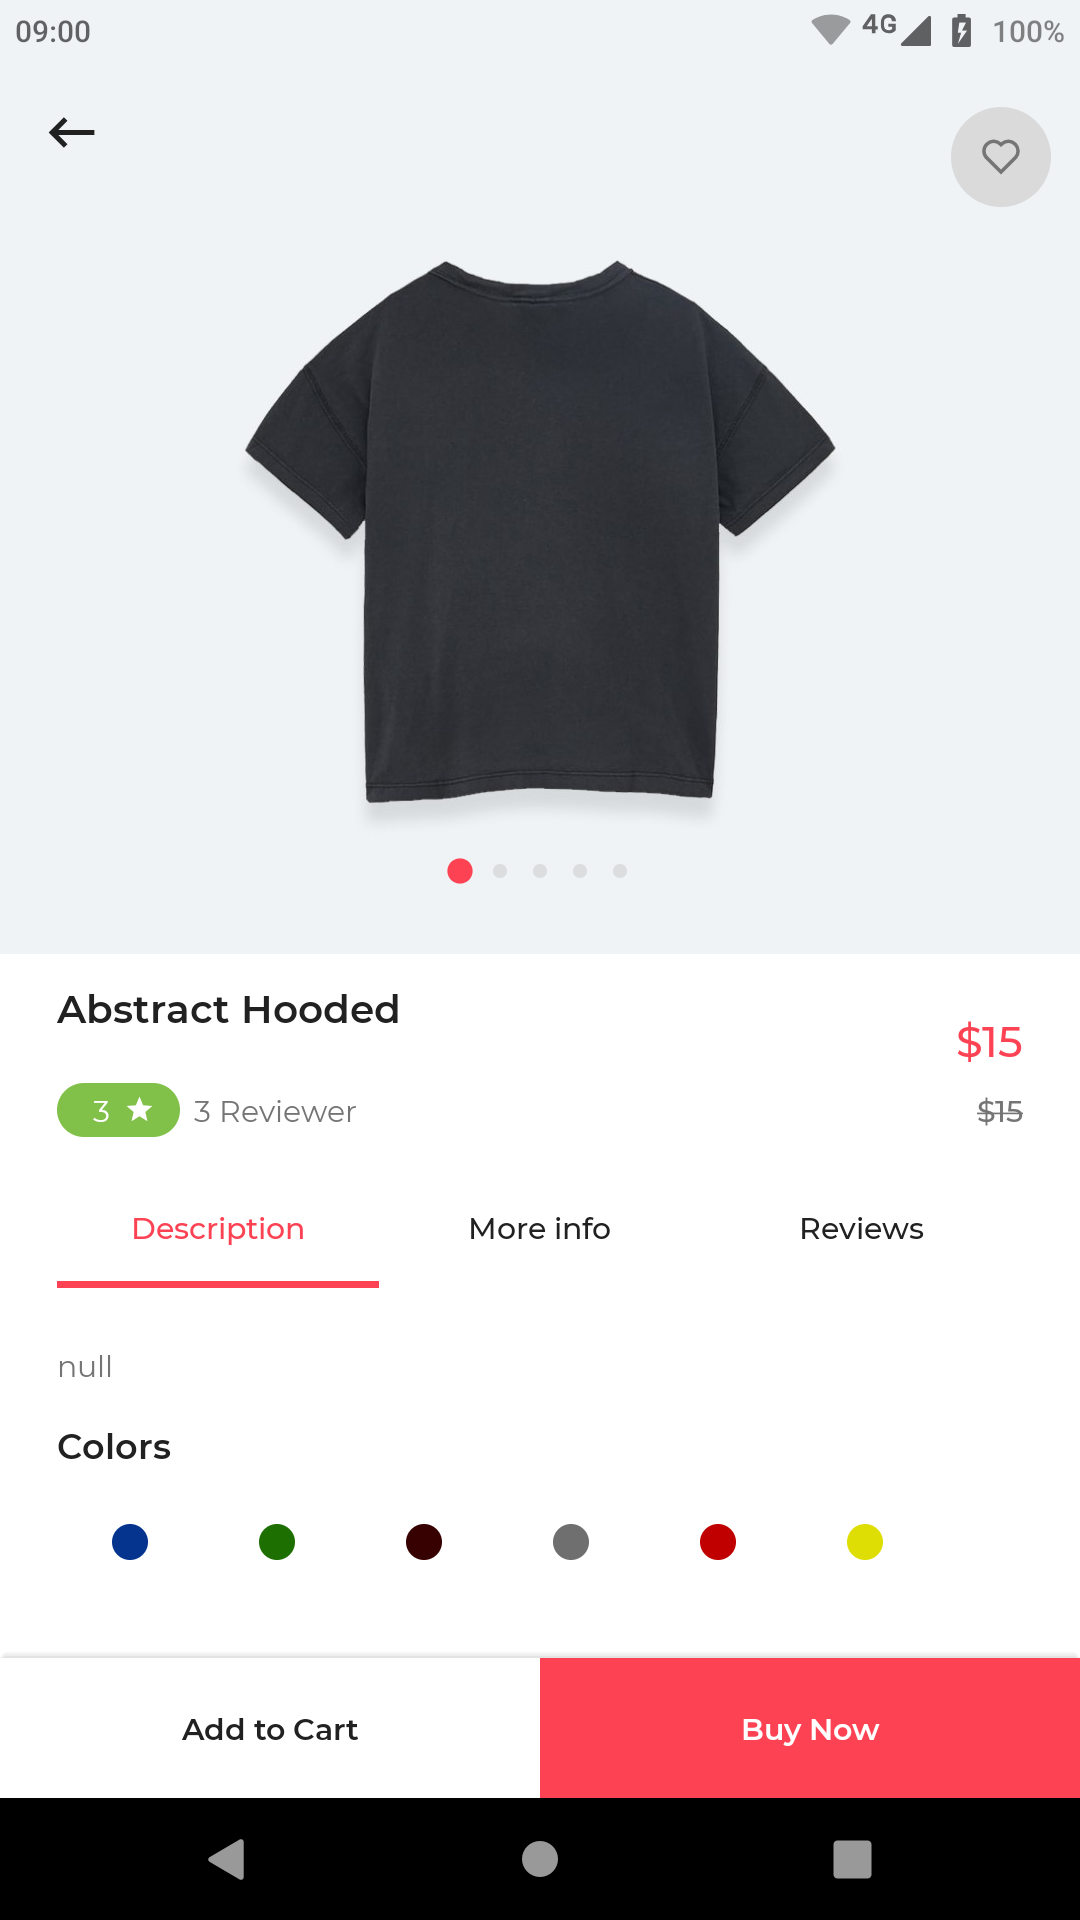 WooBox - Native Android & iOS App for WooCommerce